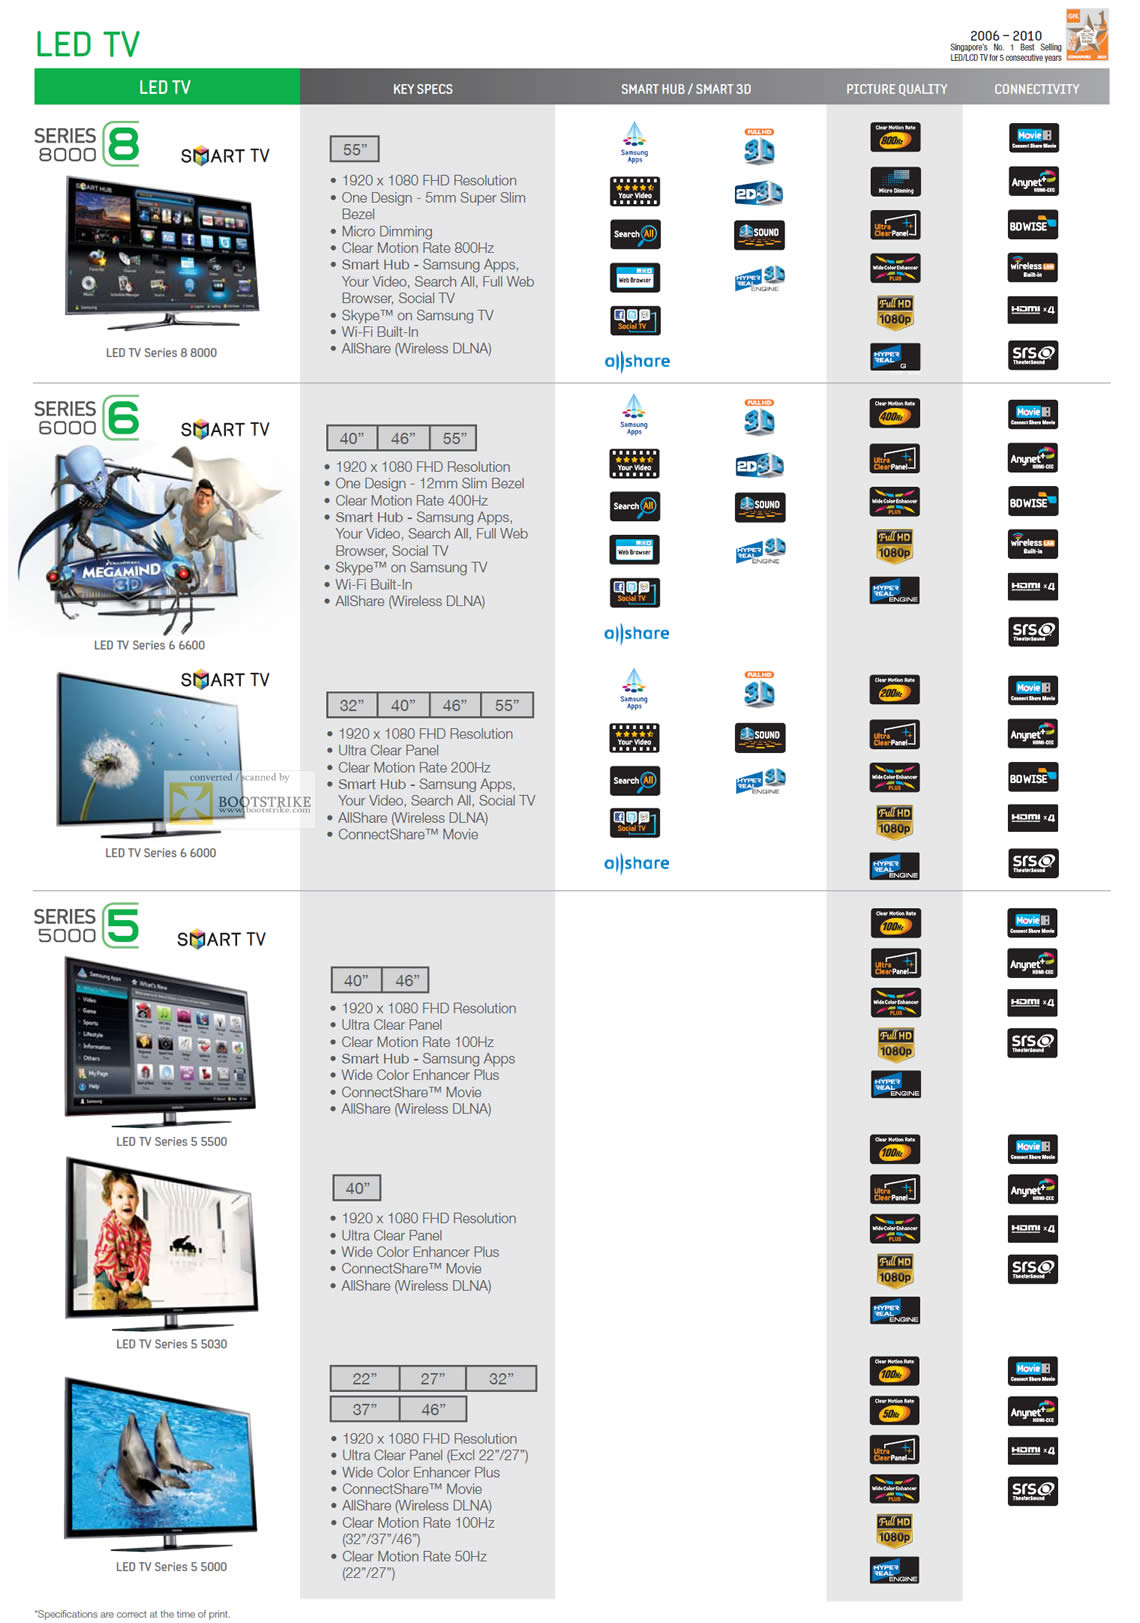 PC Show 2011 price list image brochure of Samsung Courts LED TV Series 8 8000 6 6000 5 5000